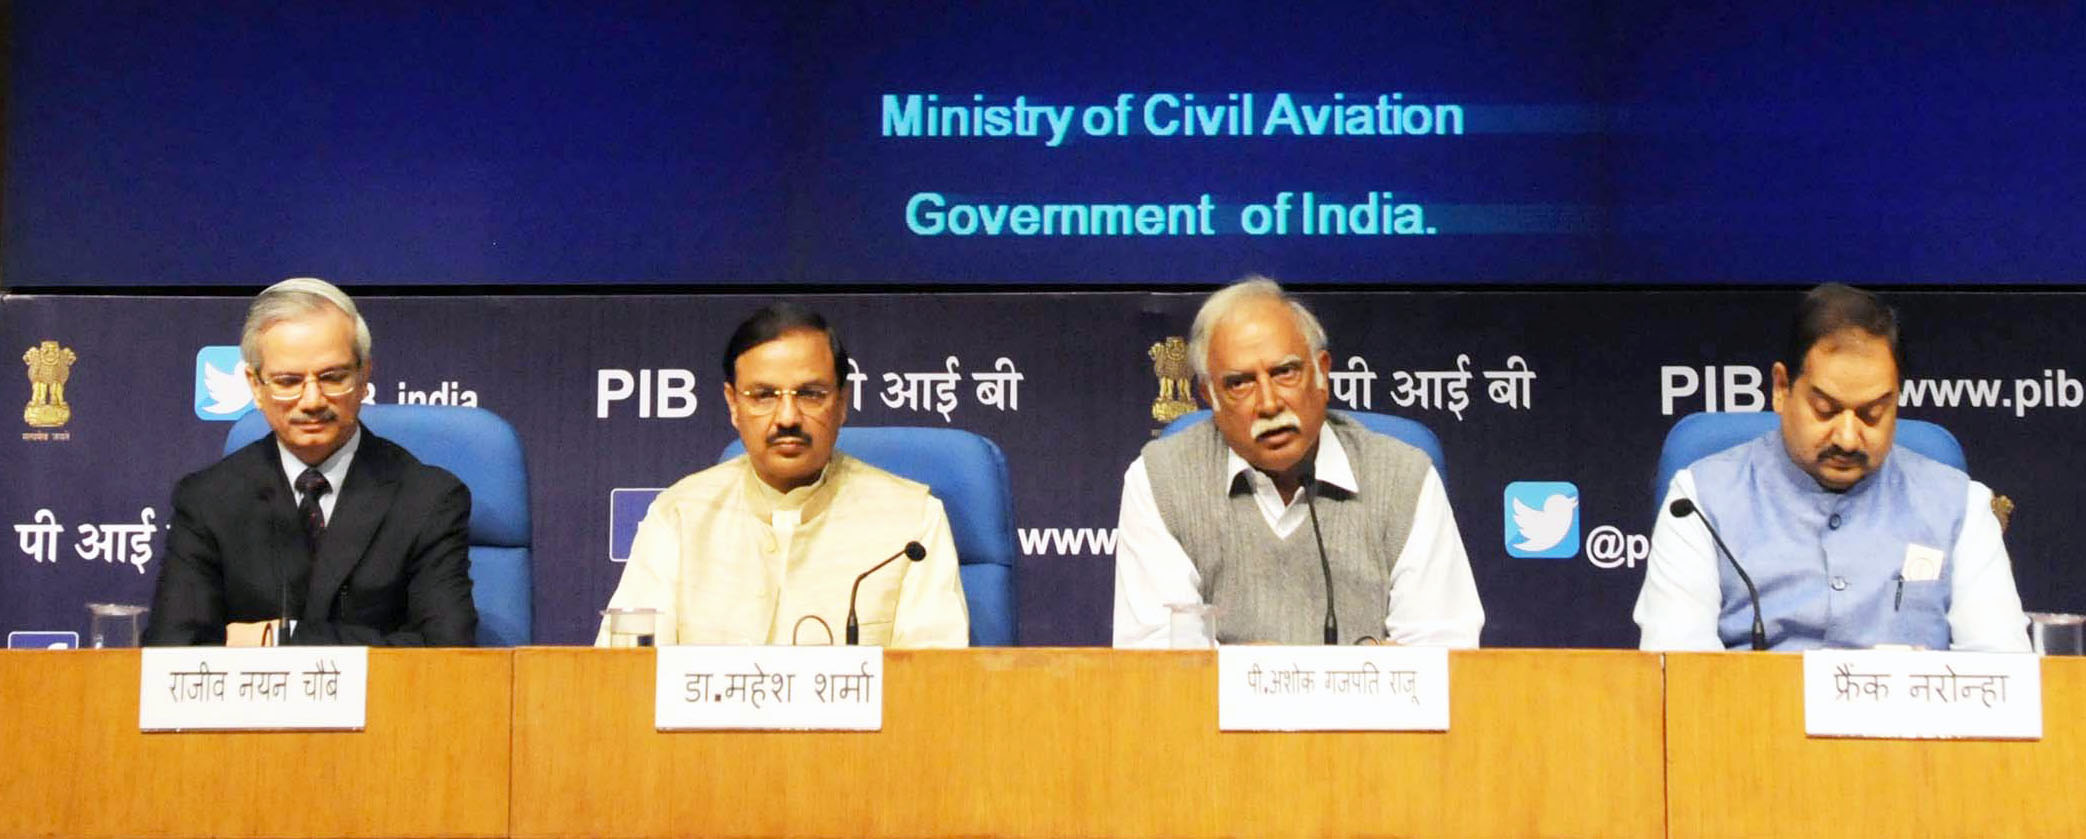 importance of civil aviation in india The civil aviation industry in india has emerged as one of the fastest growing  industries in the country during the last three years india is currently considered  the.